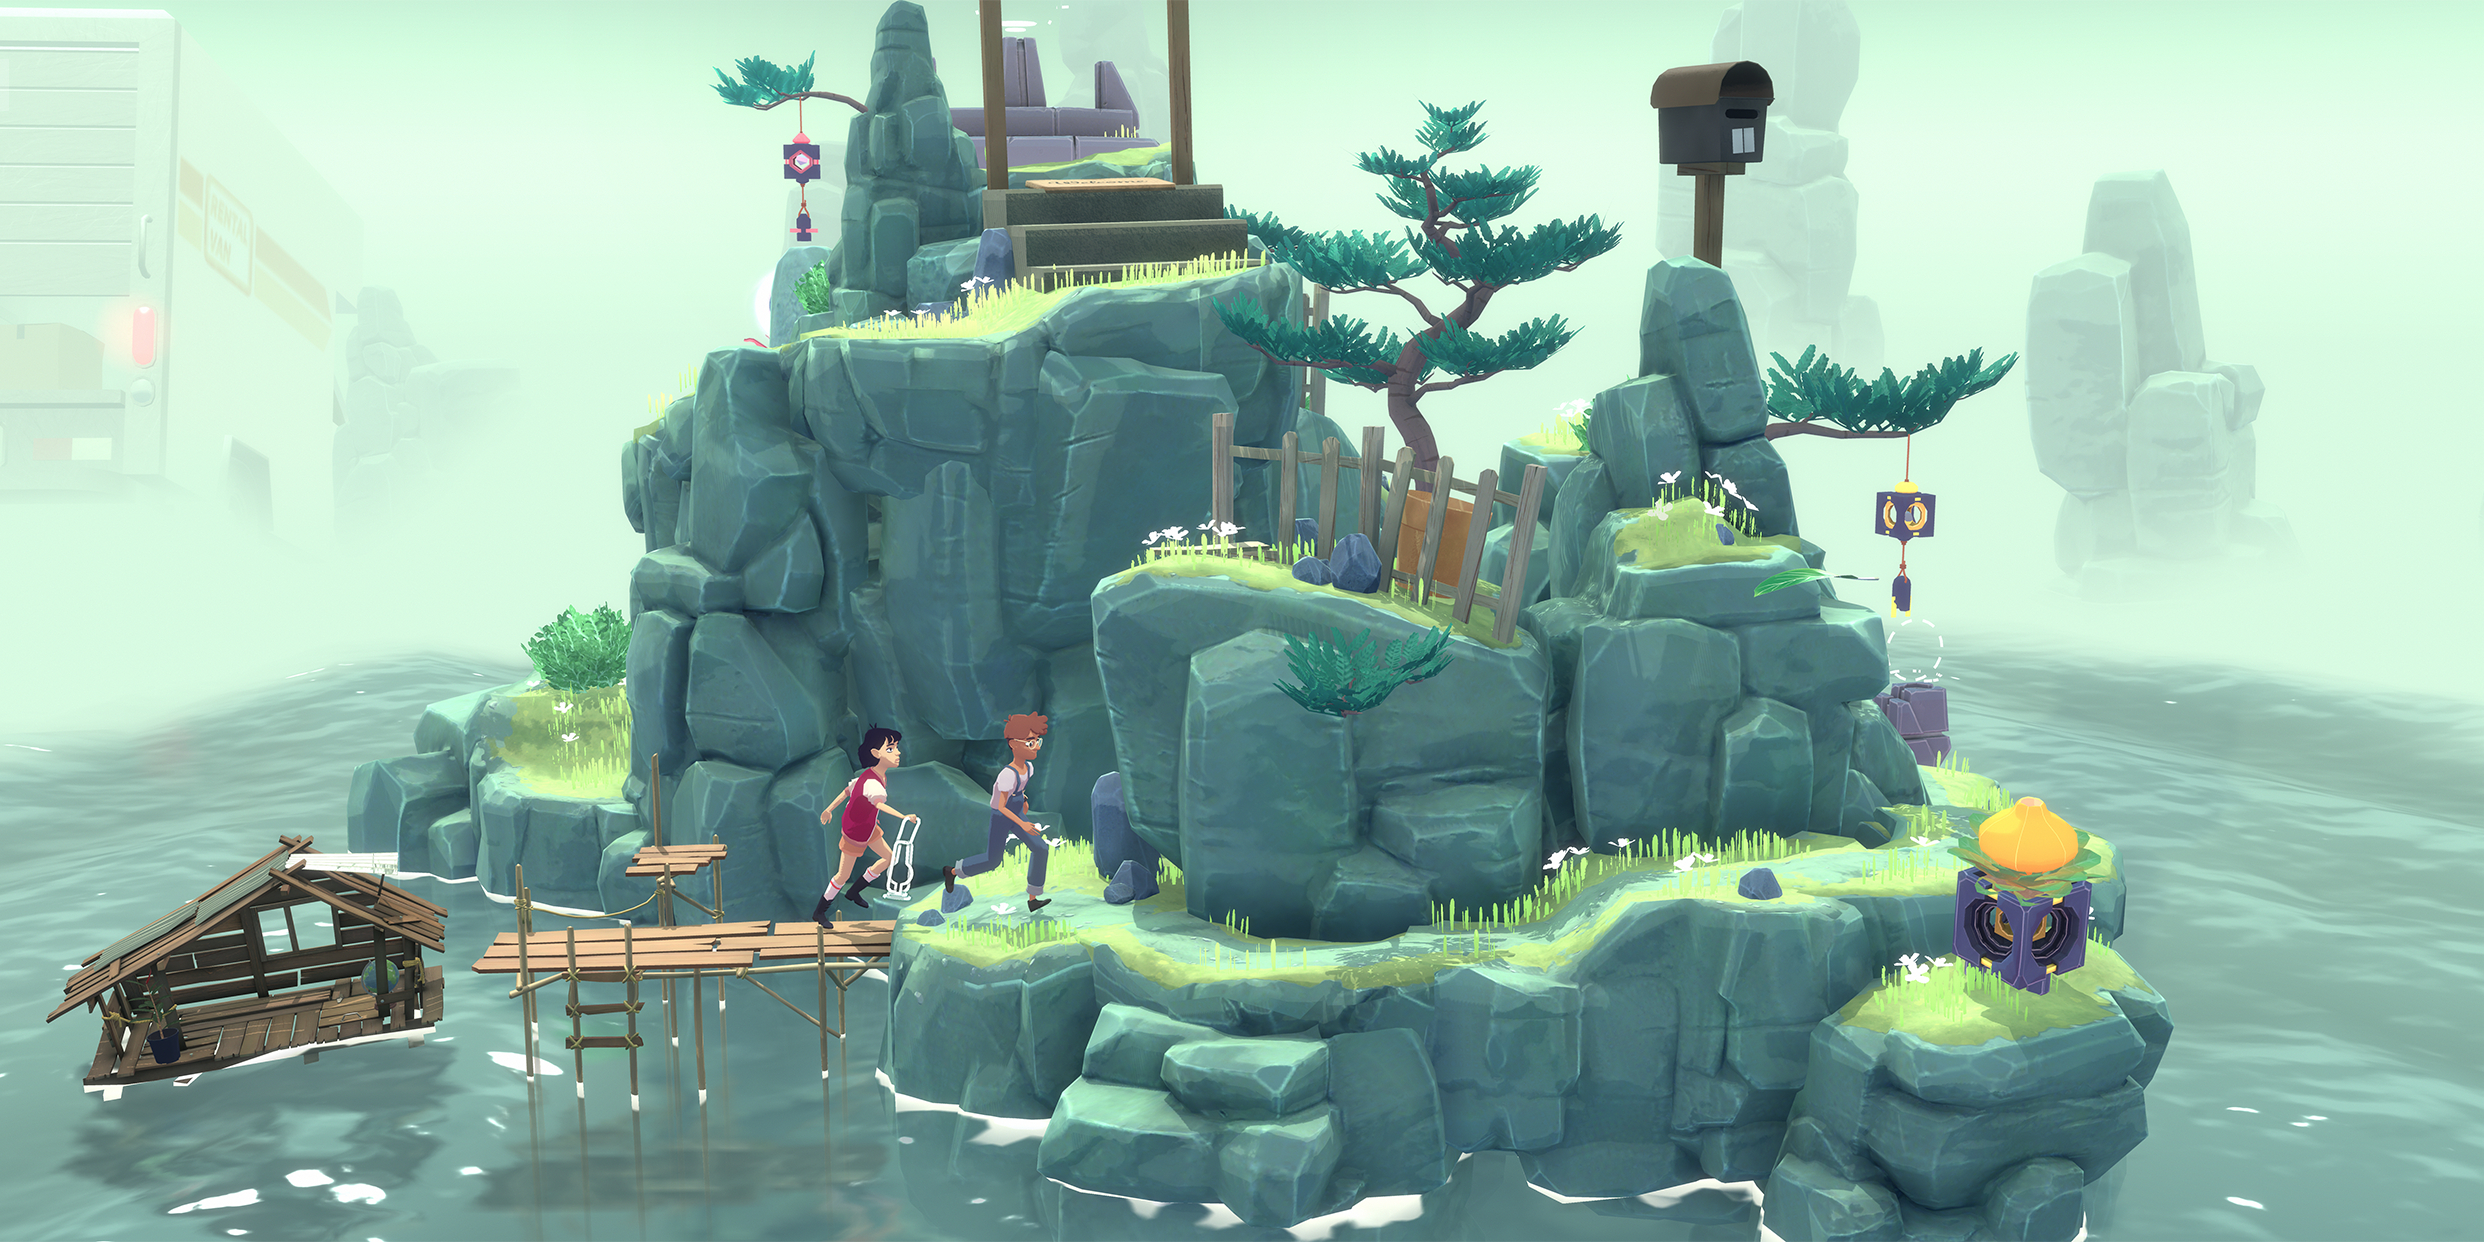 The Gardens Between is a breathtaking mobile puzzler available now in open beta for Android